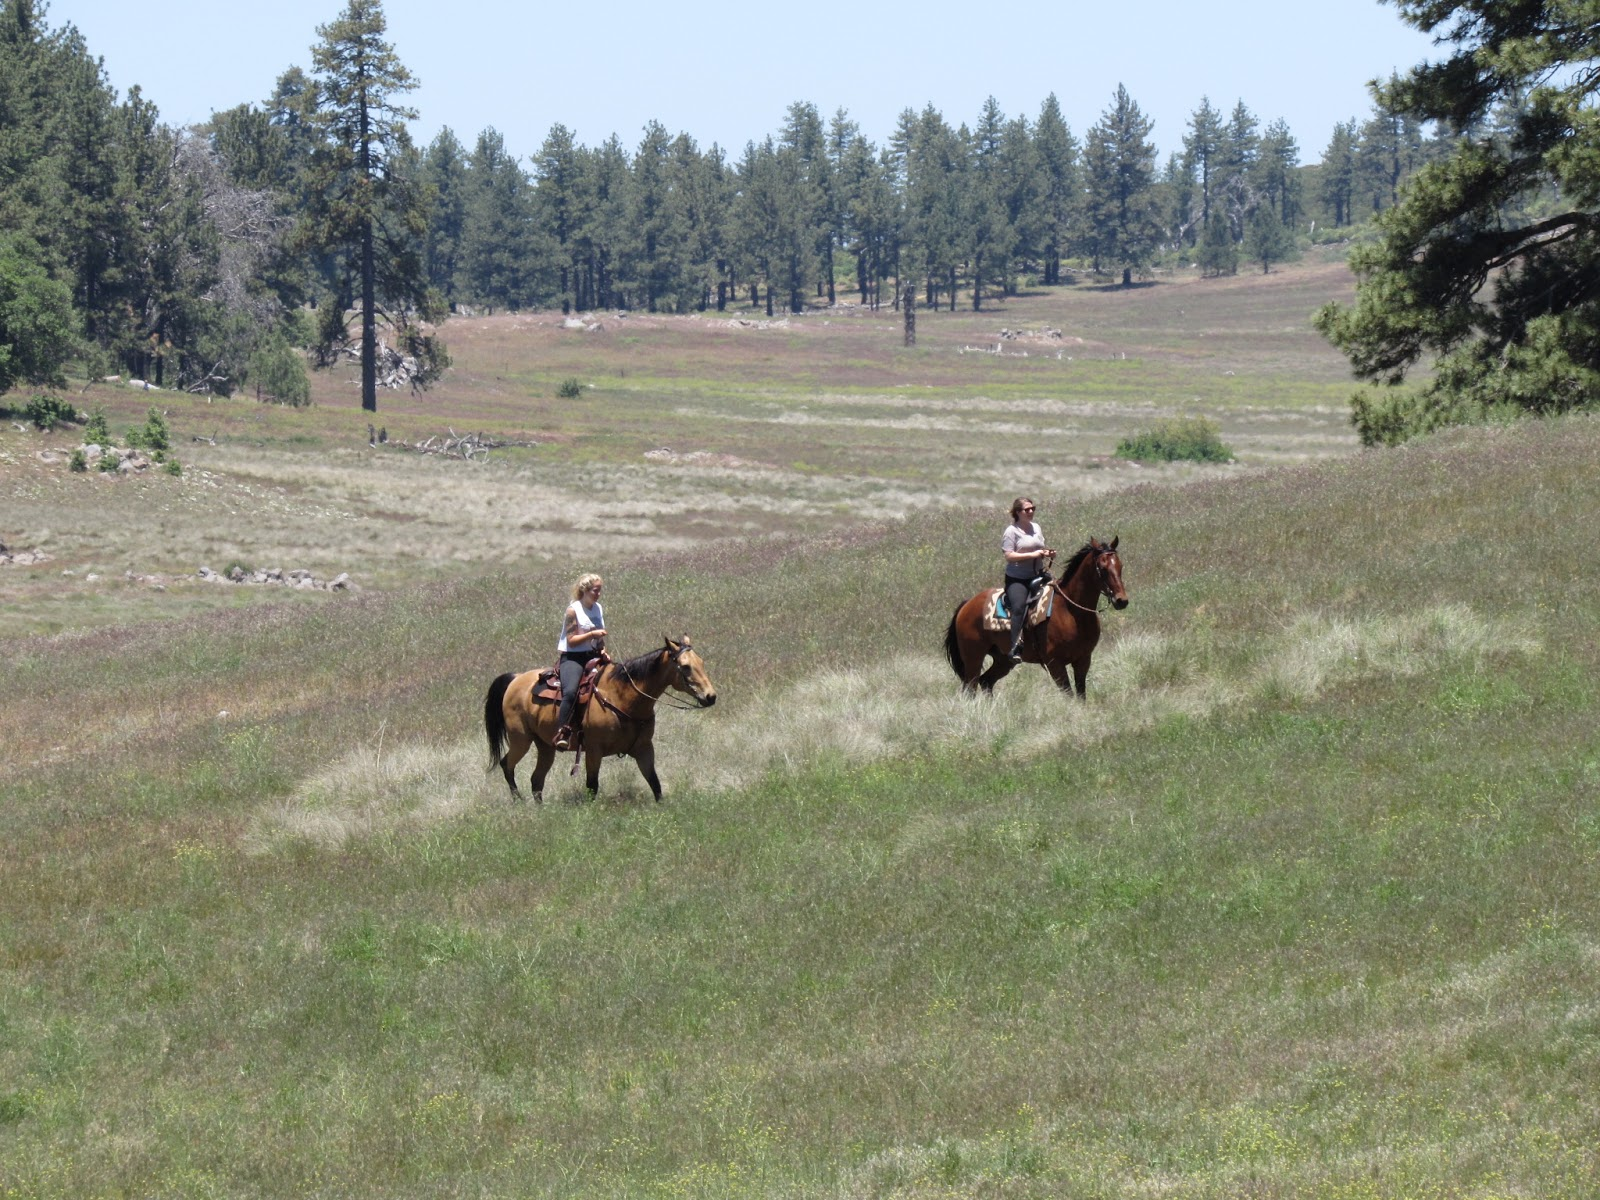 i always expect to see hoss little joe and pa cartwright come riding through the meadow but had to settle for these two women on horseback today